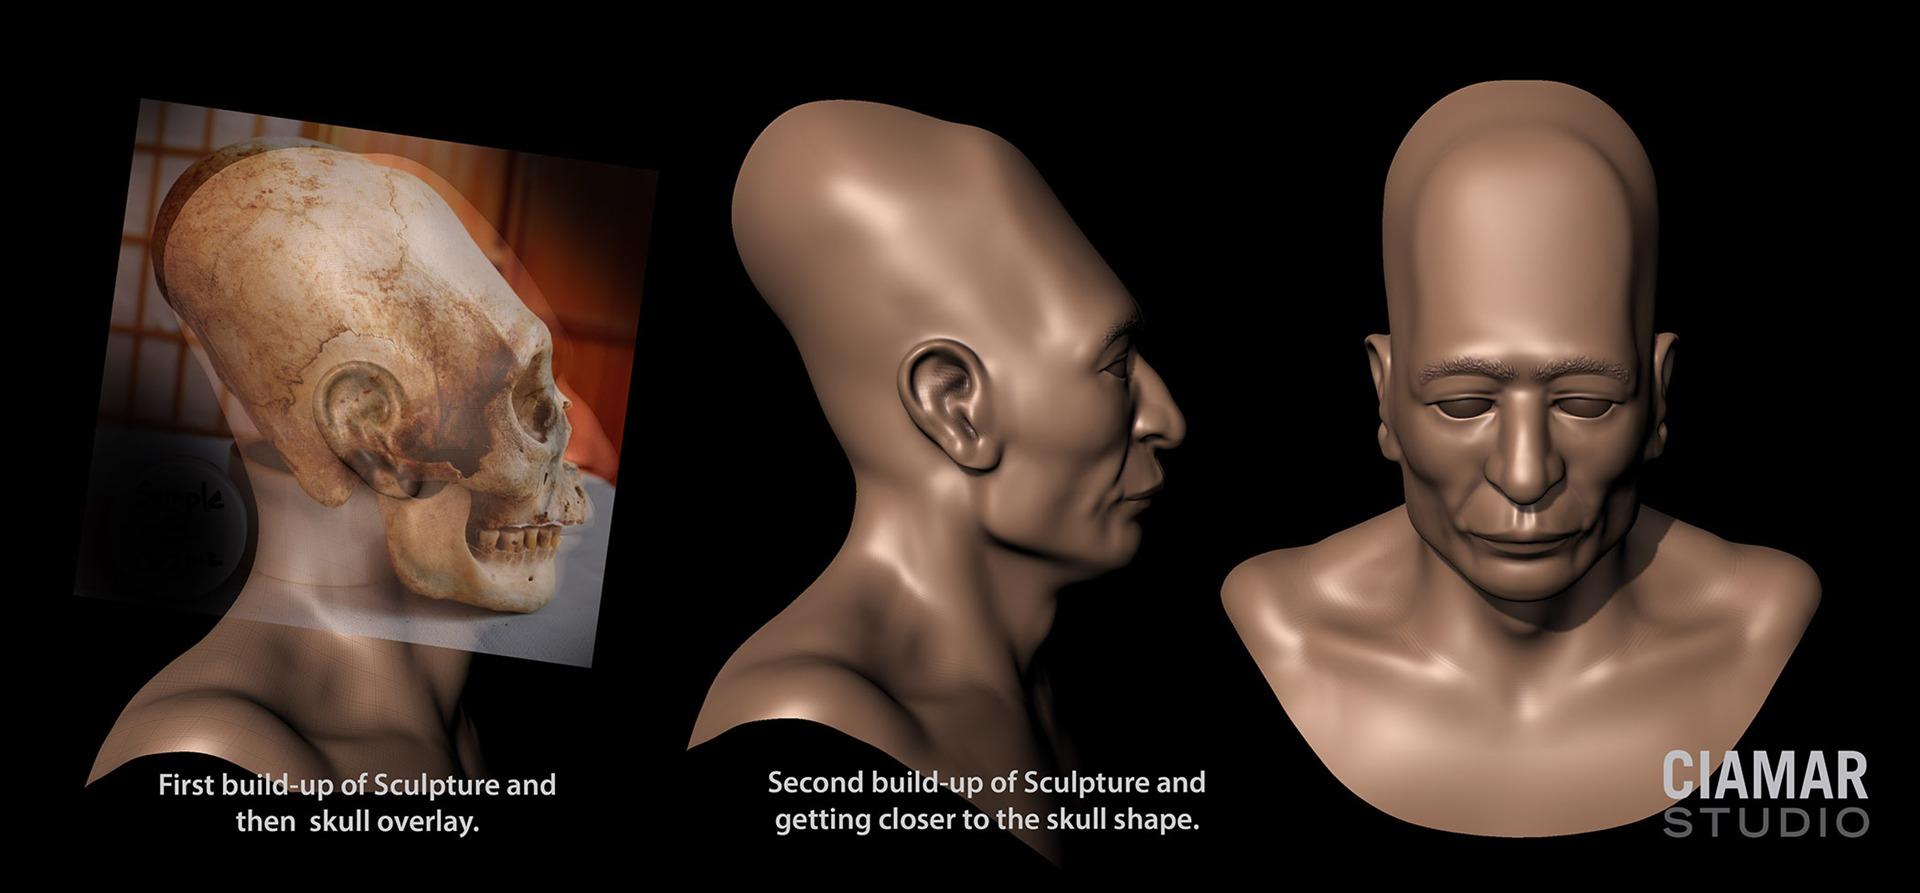 Nice wallpapers Elongated Skull 1920x893px